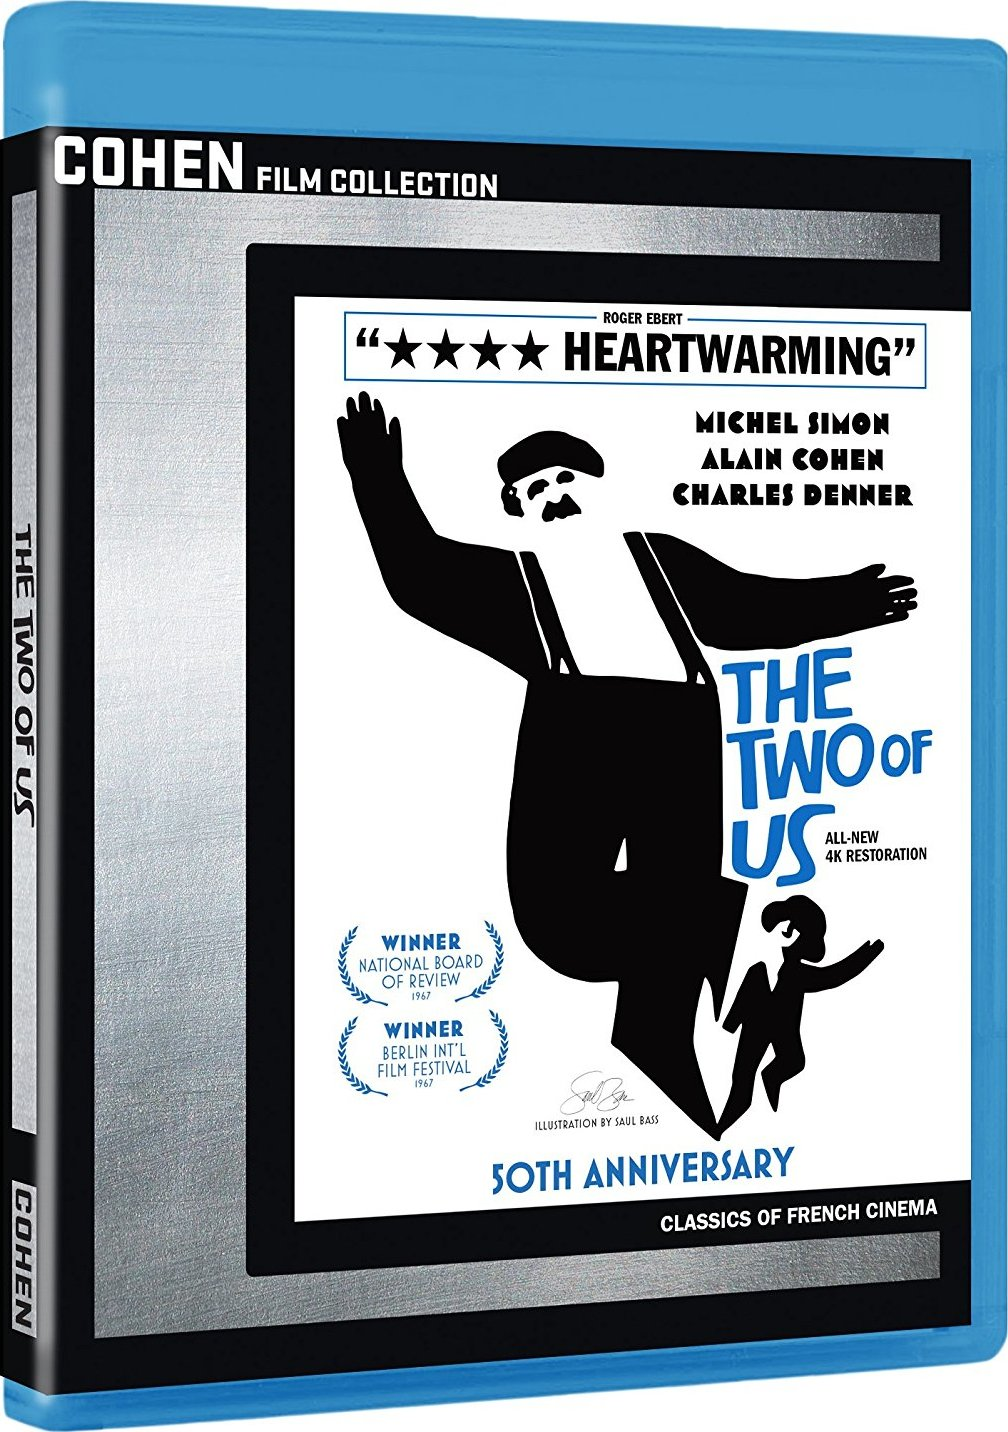 The Two of Us (1967) 50th Anniversary Edition Blu-ray